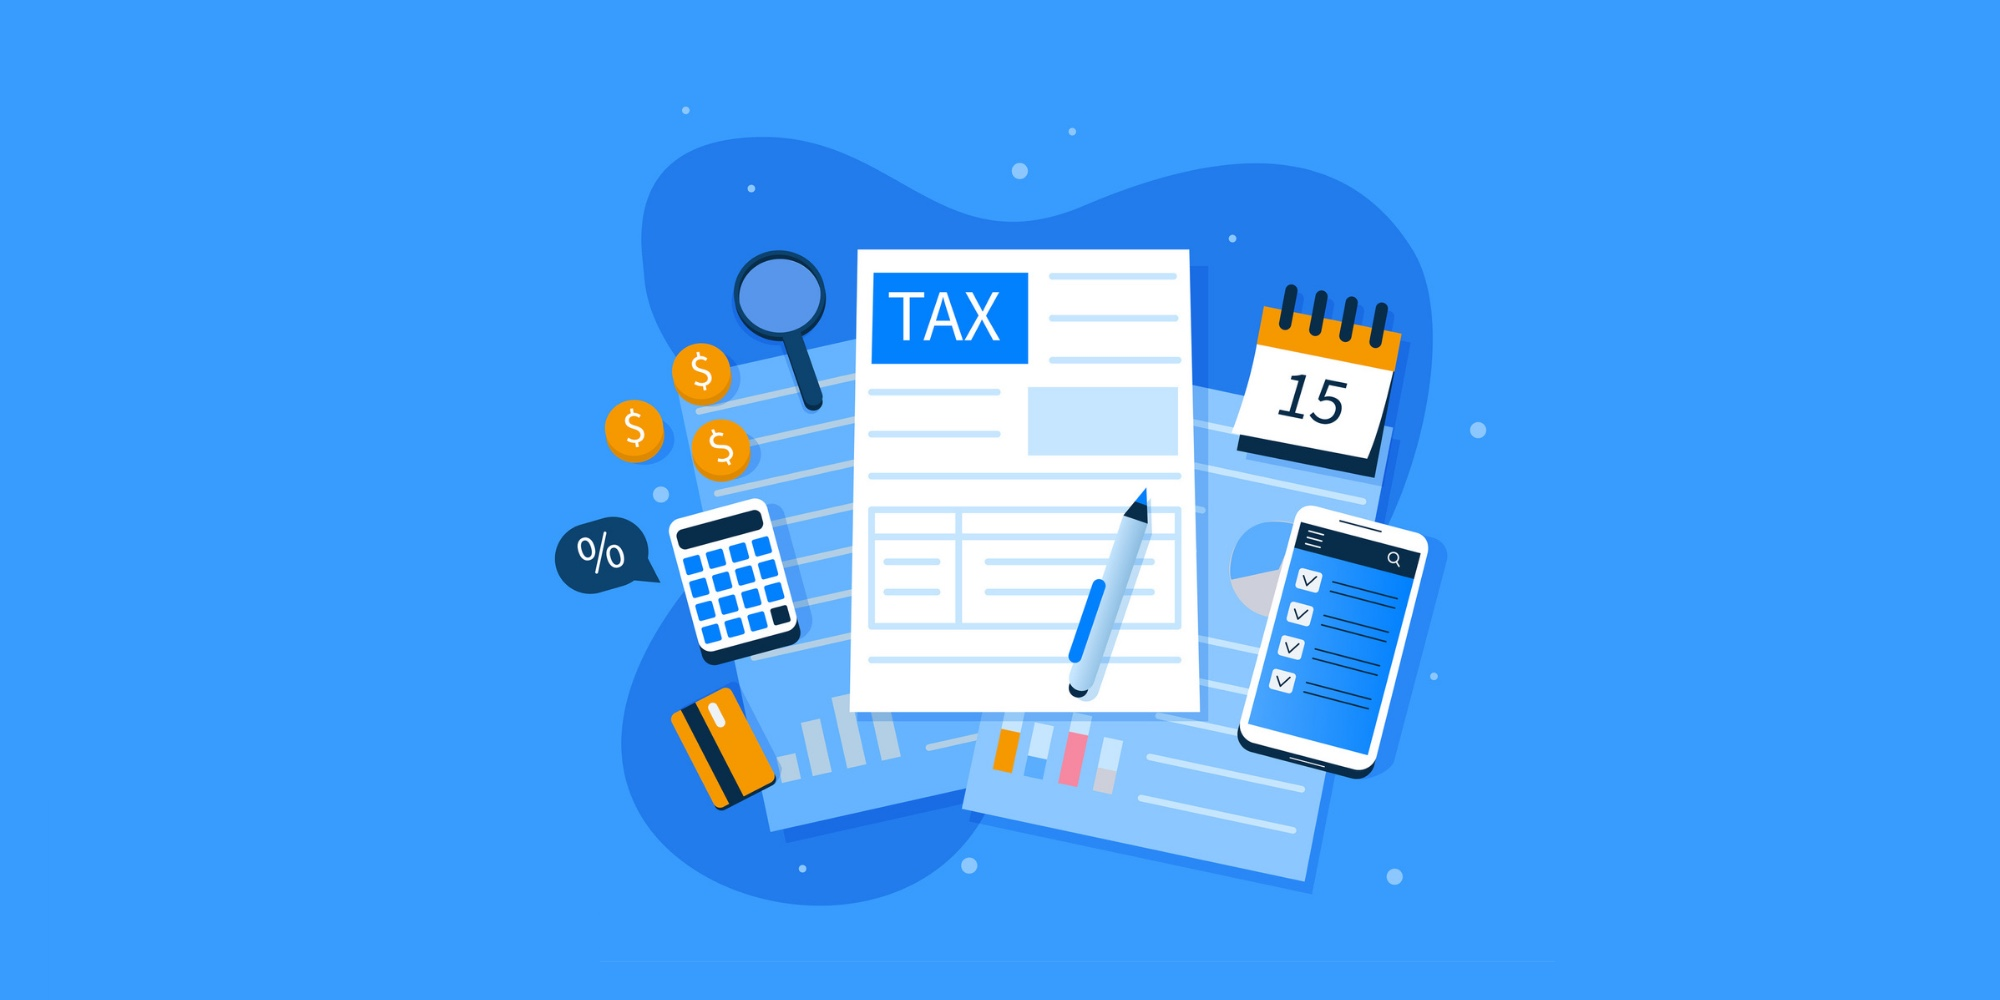 How To Get Your SMB Ready For Tax Season